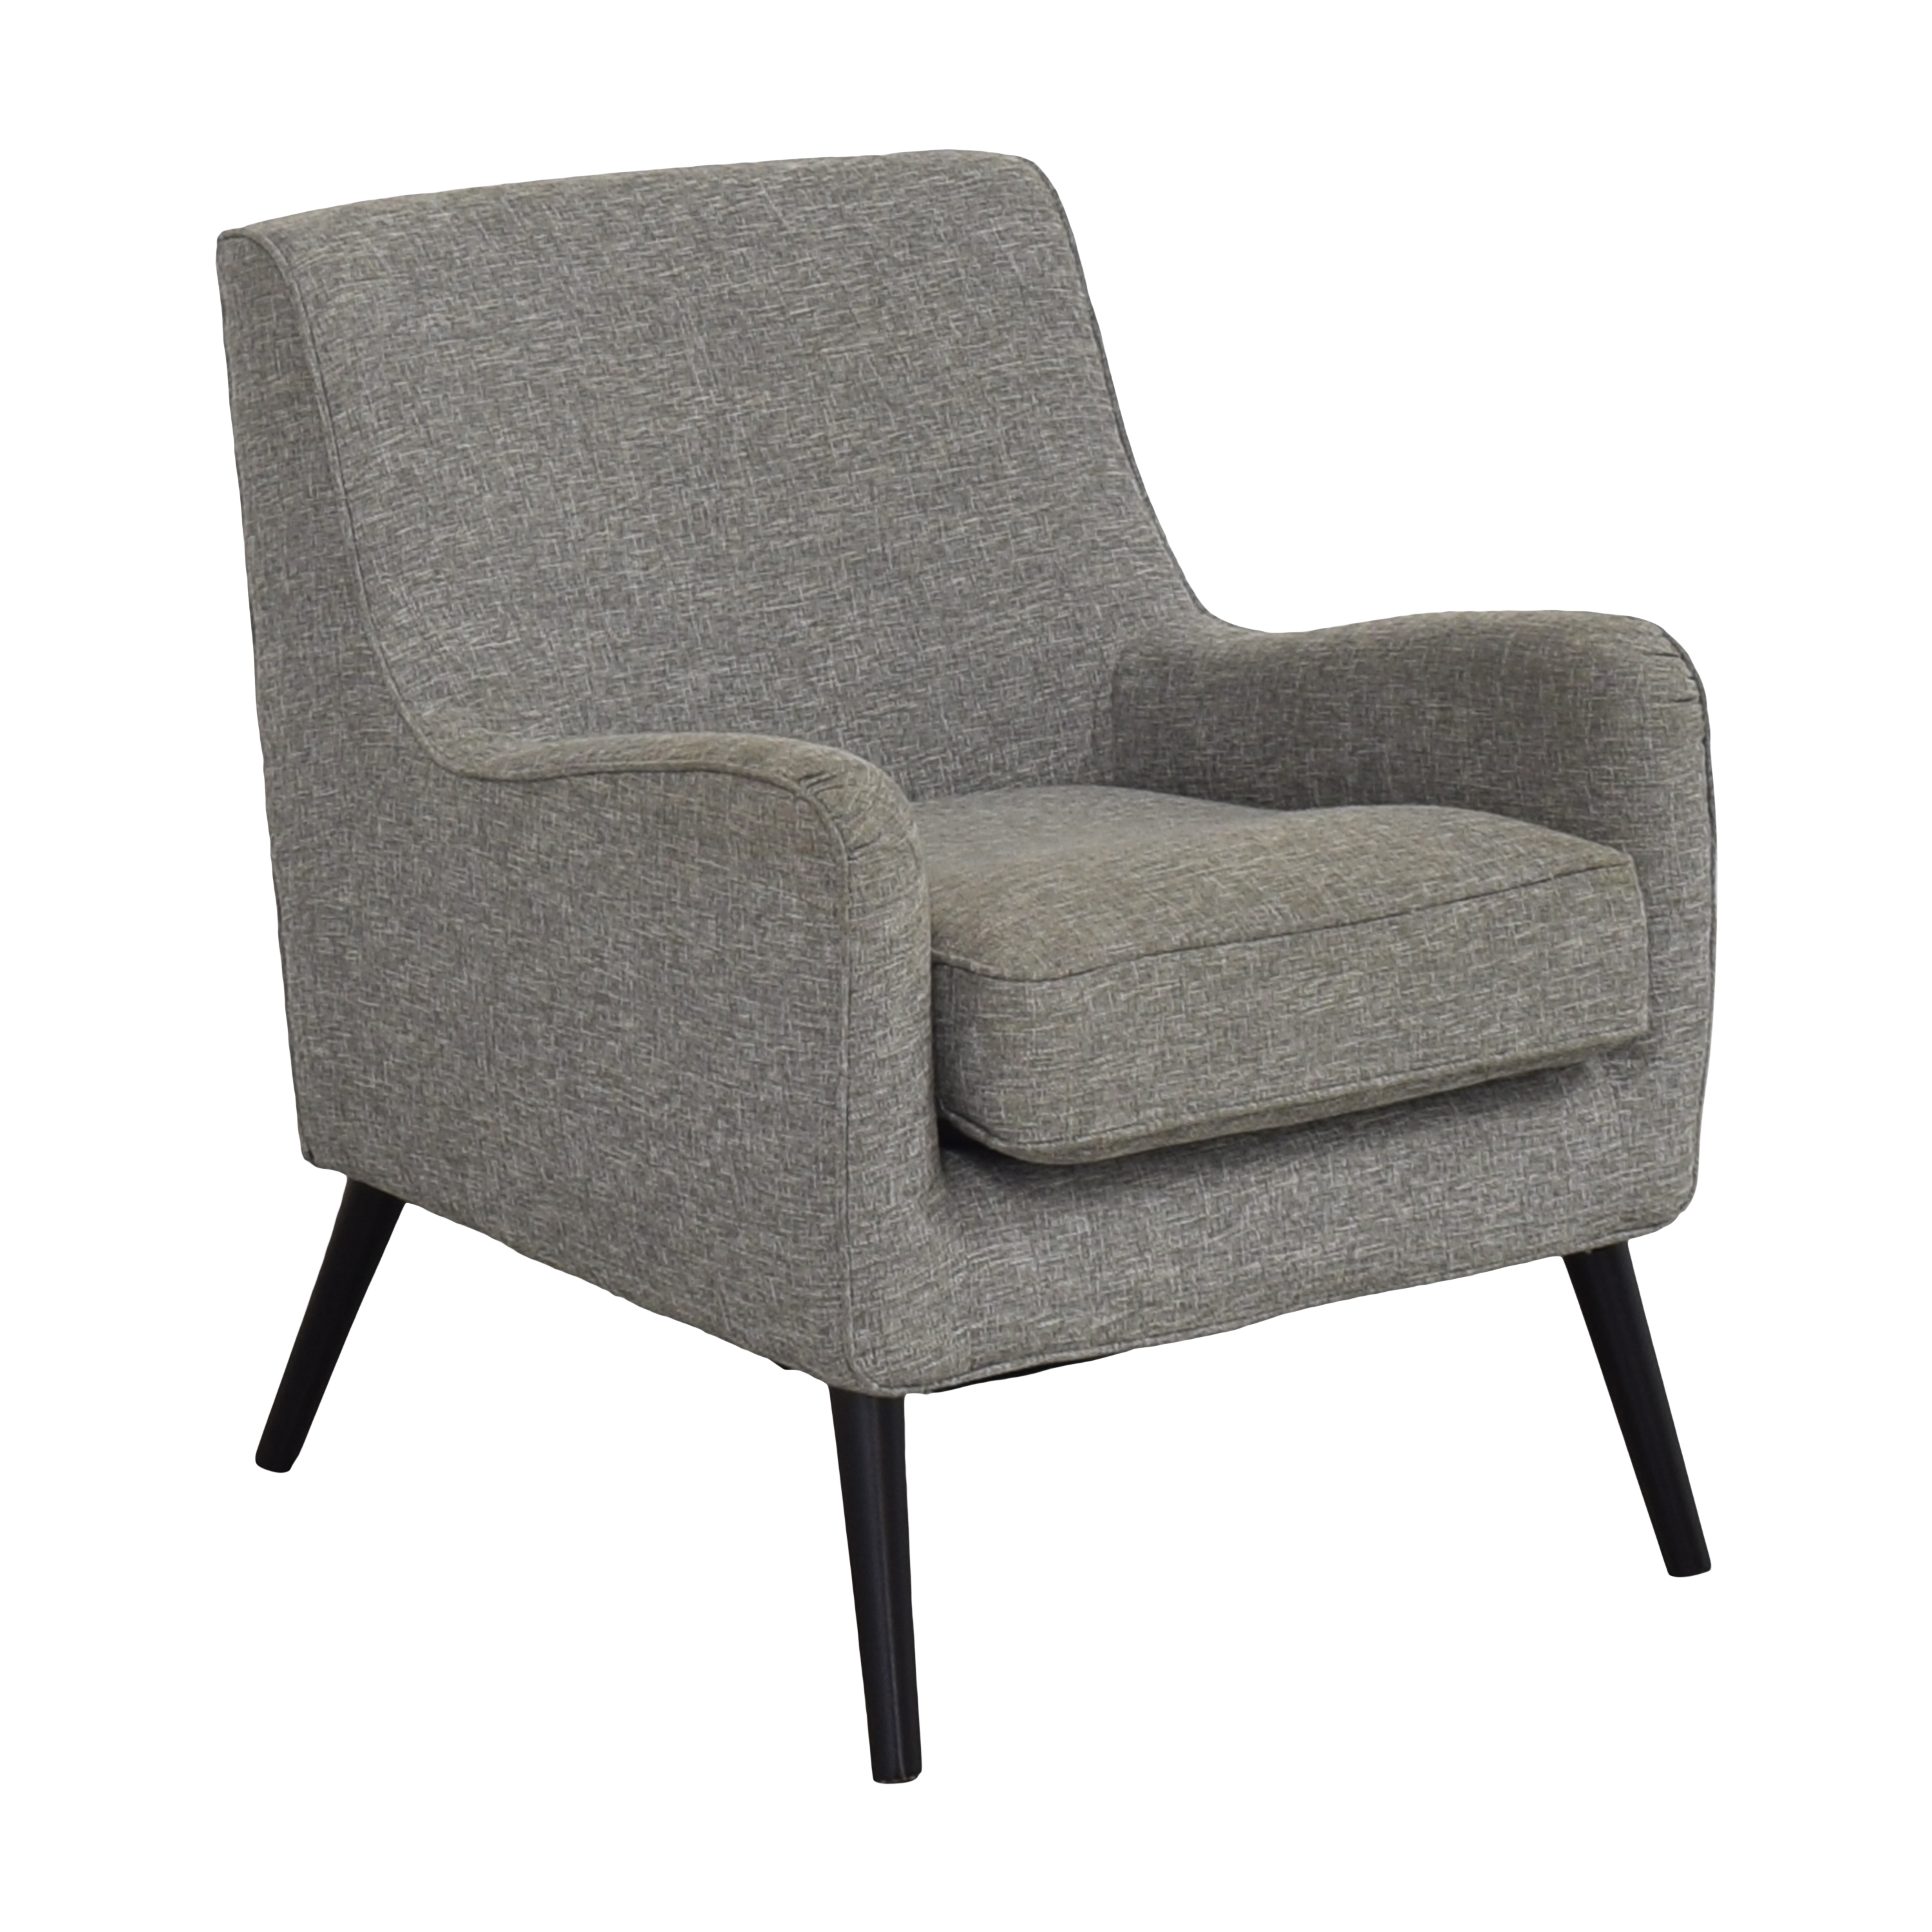 buy West Elm Book Nook Arm Chair West Elm Chairs